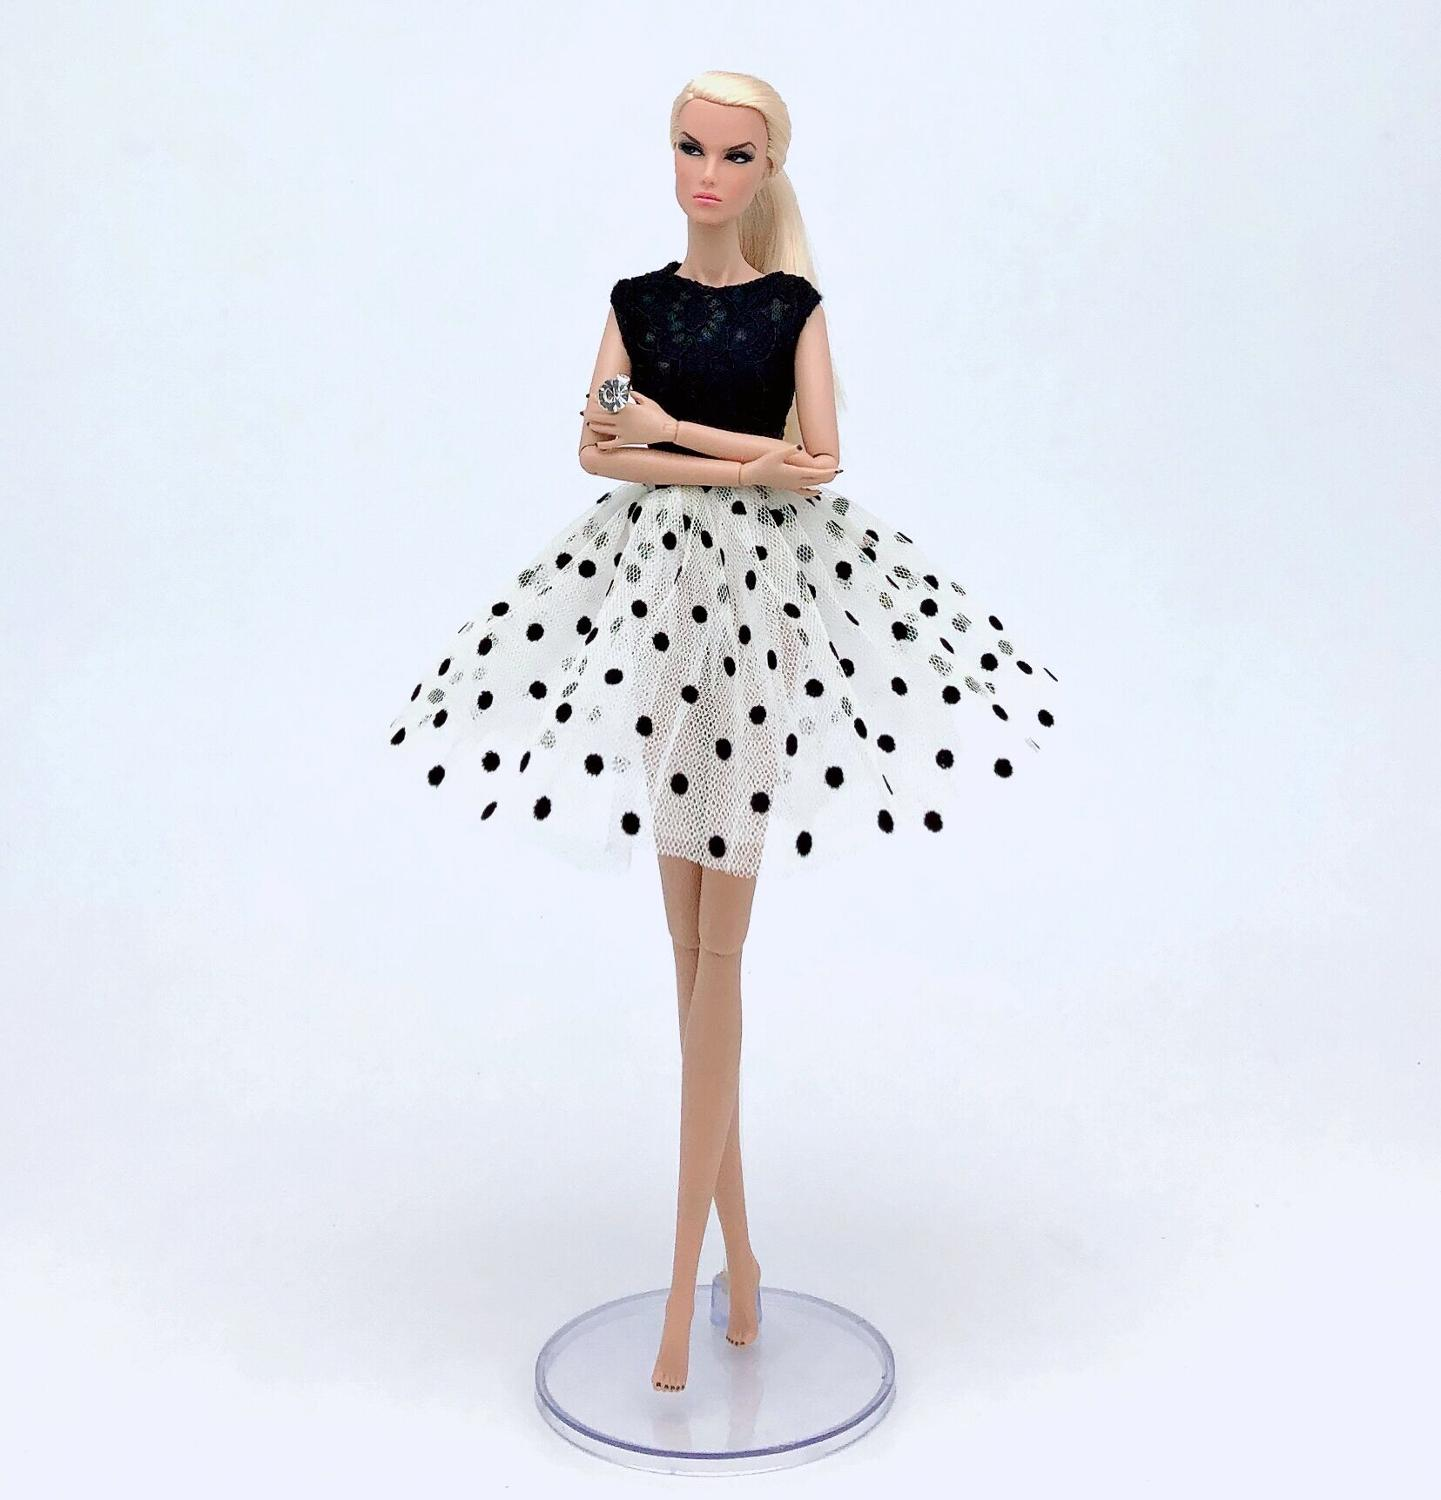 Office Outfit Wave Point Dress For Barbie 1/6 Doll Casual Wear Accessories Clothes Play House Dressing Up Costume Kids Toys Gift